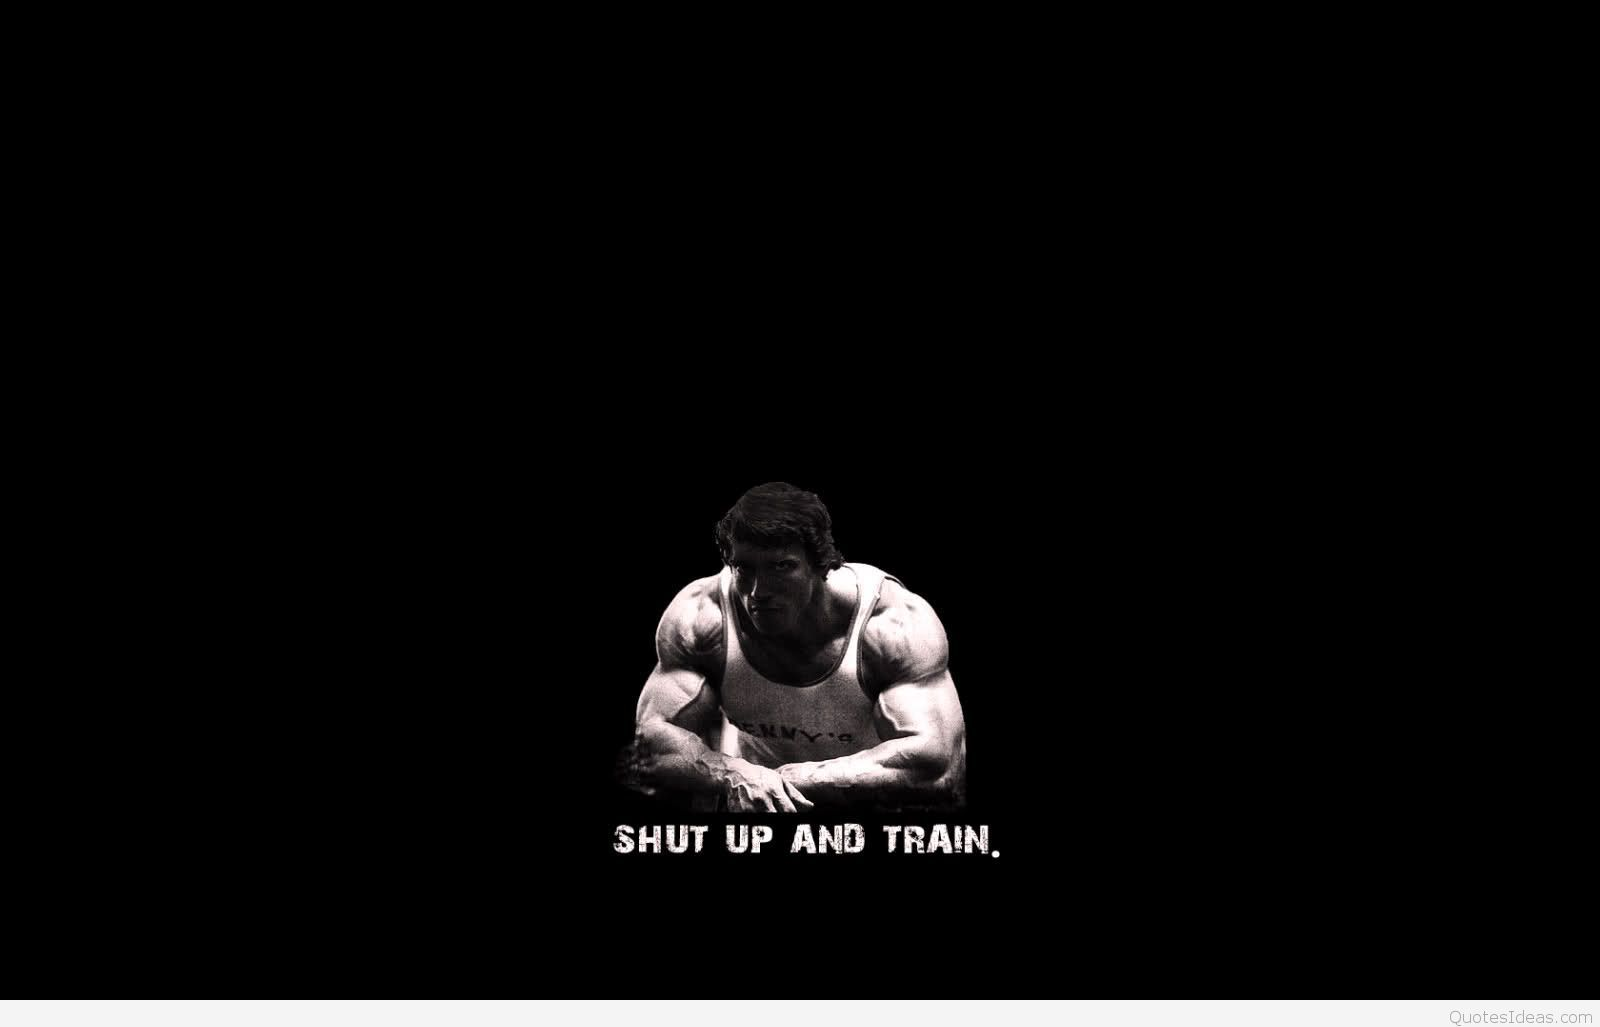 1600x1027 Shut up and train quote wallpaper